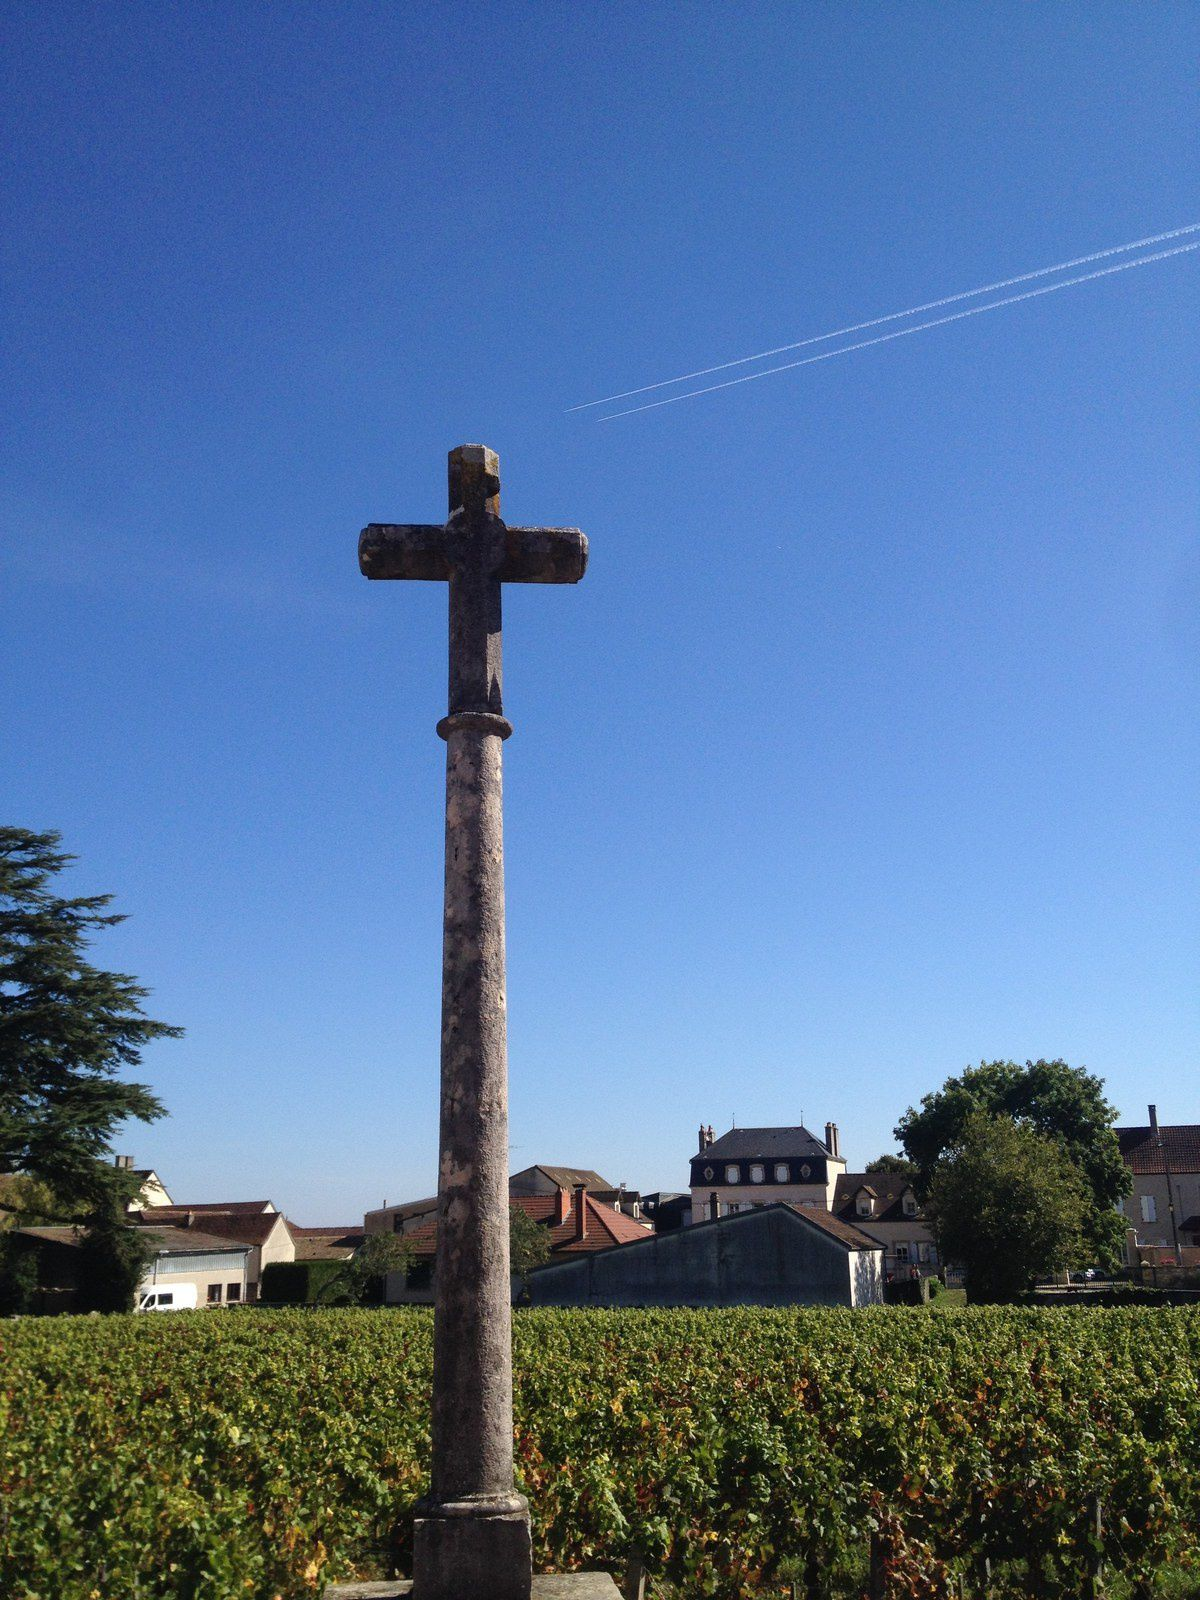 The sun is always shining on Vosne-Romanée. We'll be back !